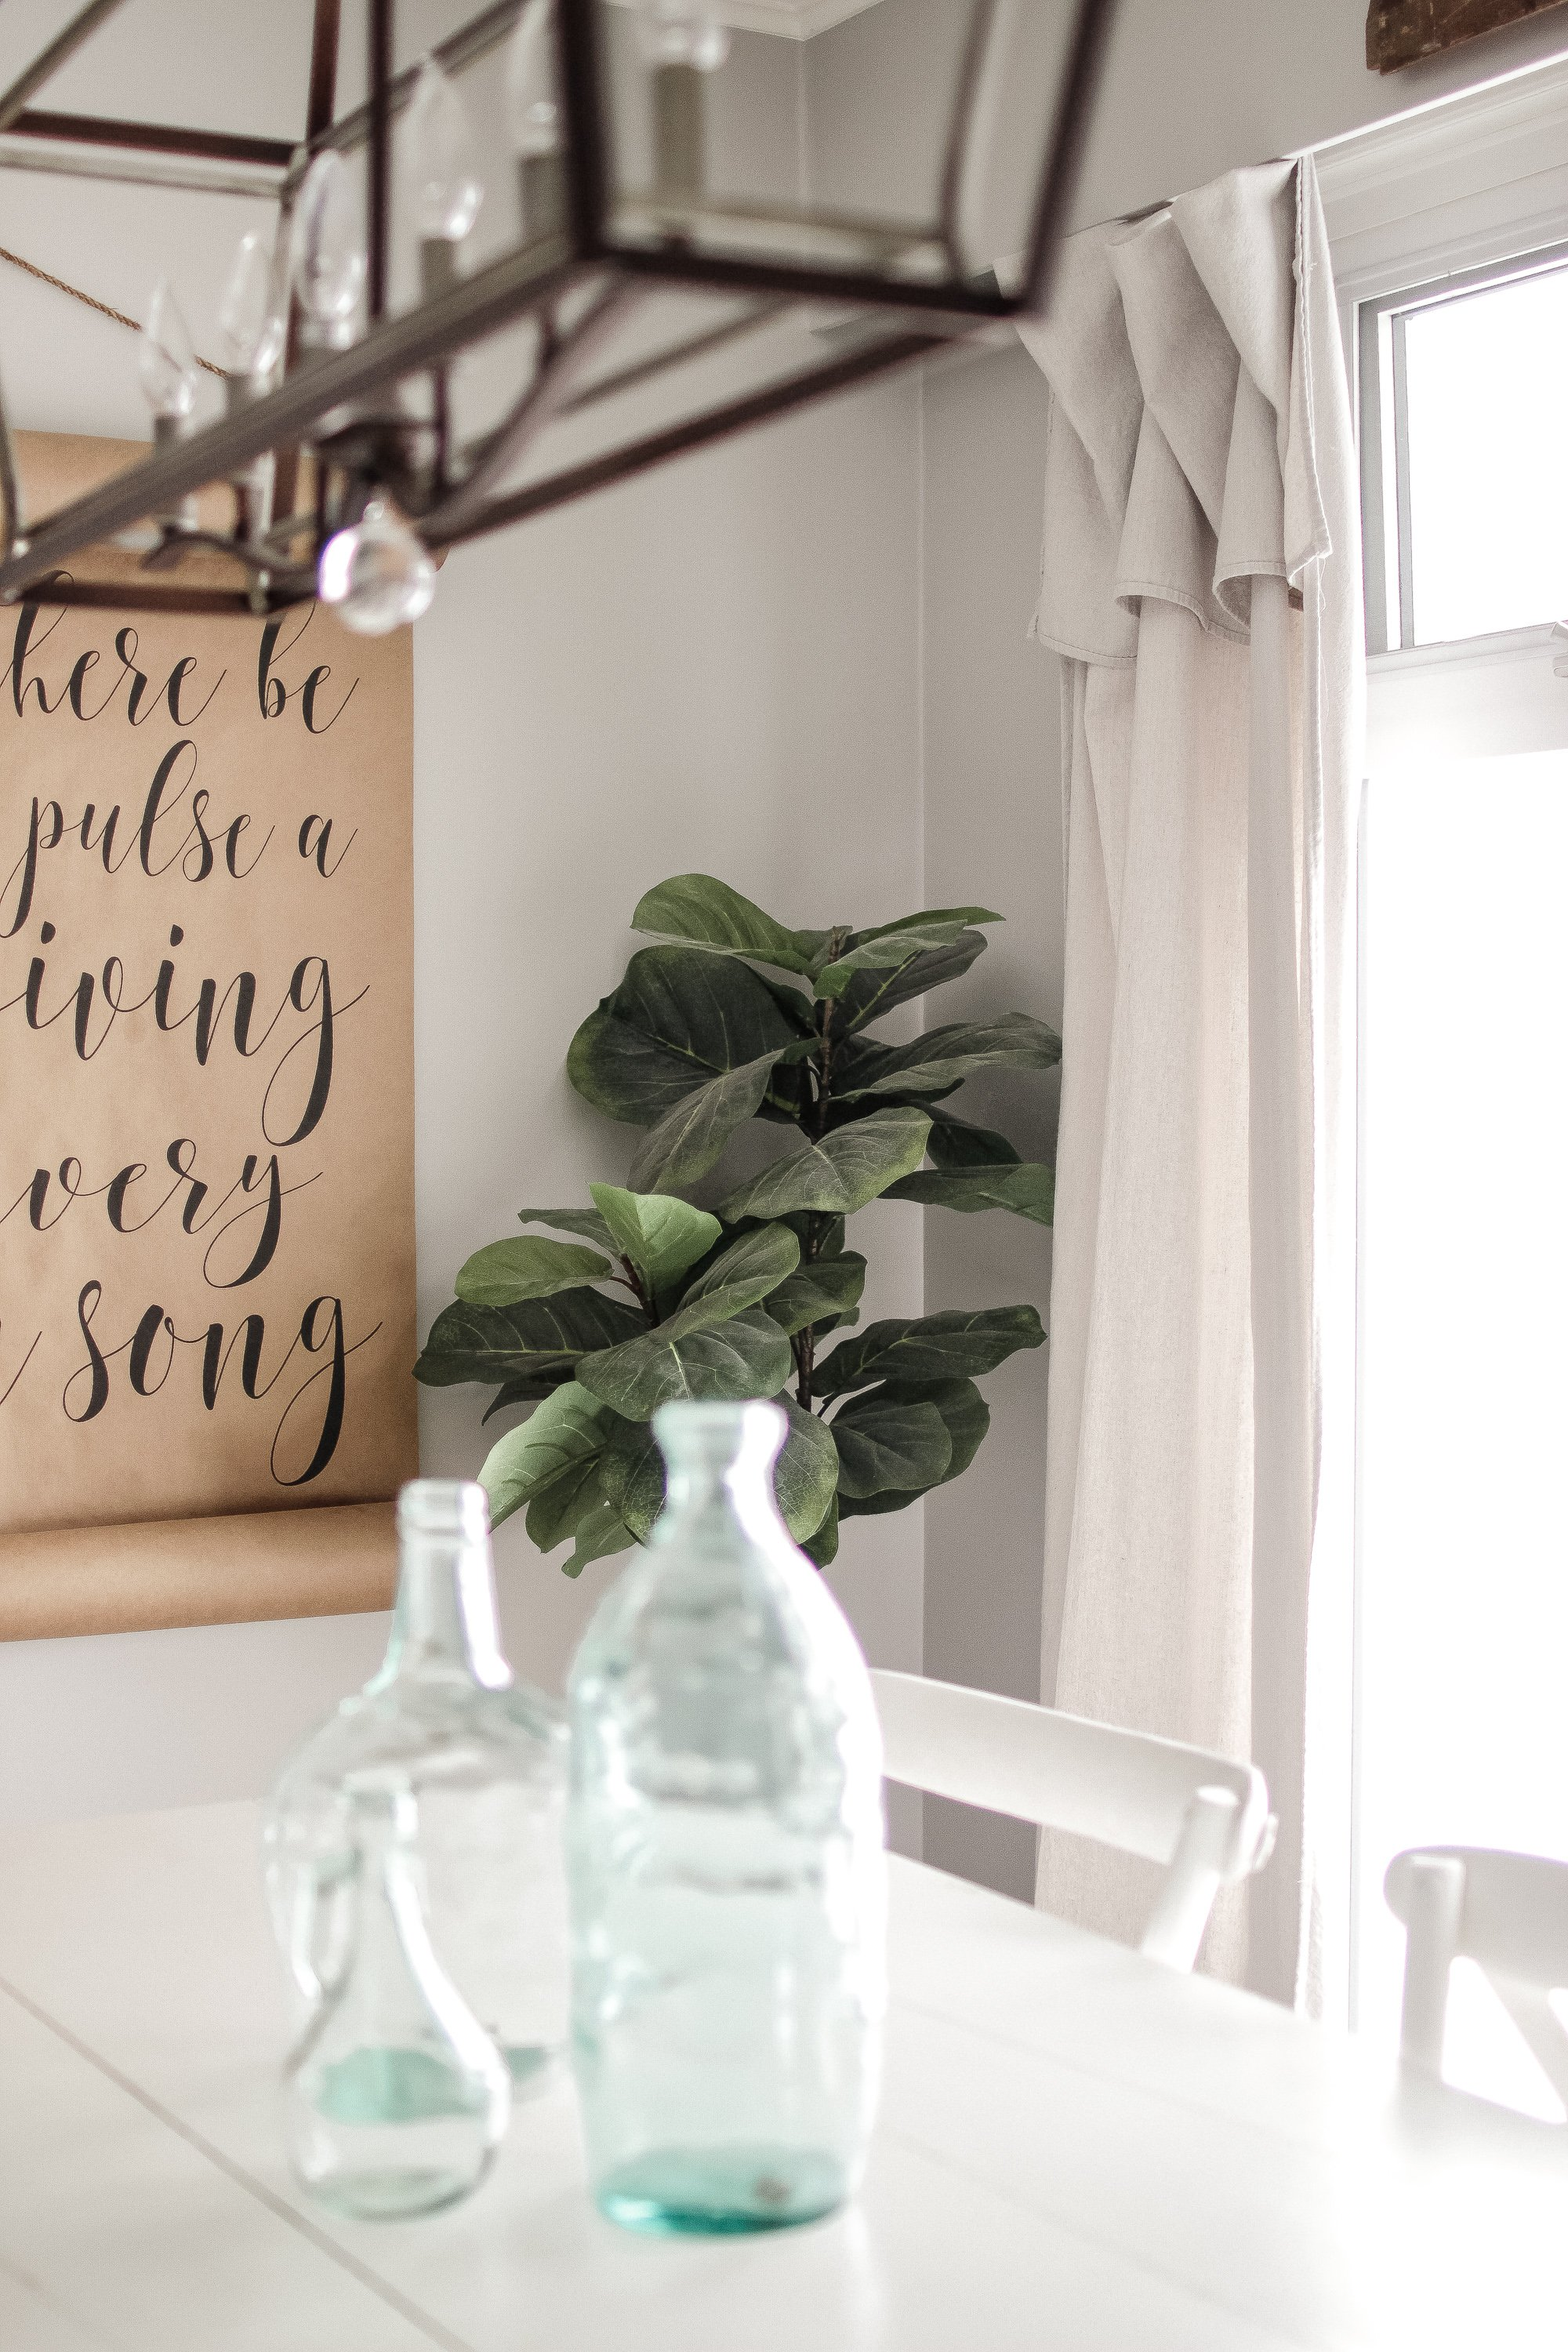 The Easiest DIY Drop Sheet Curtains. You do not need to measure, cut or sew. Super Easy Farmhouse Curtains in Minutes!